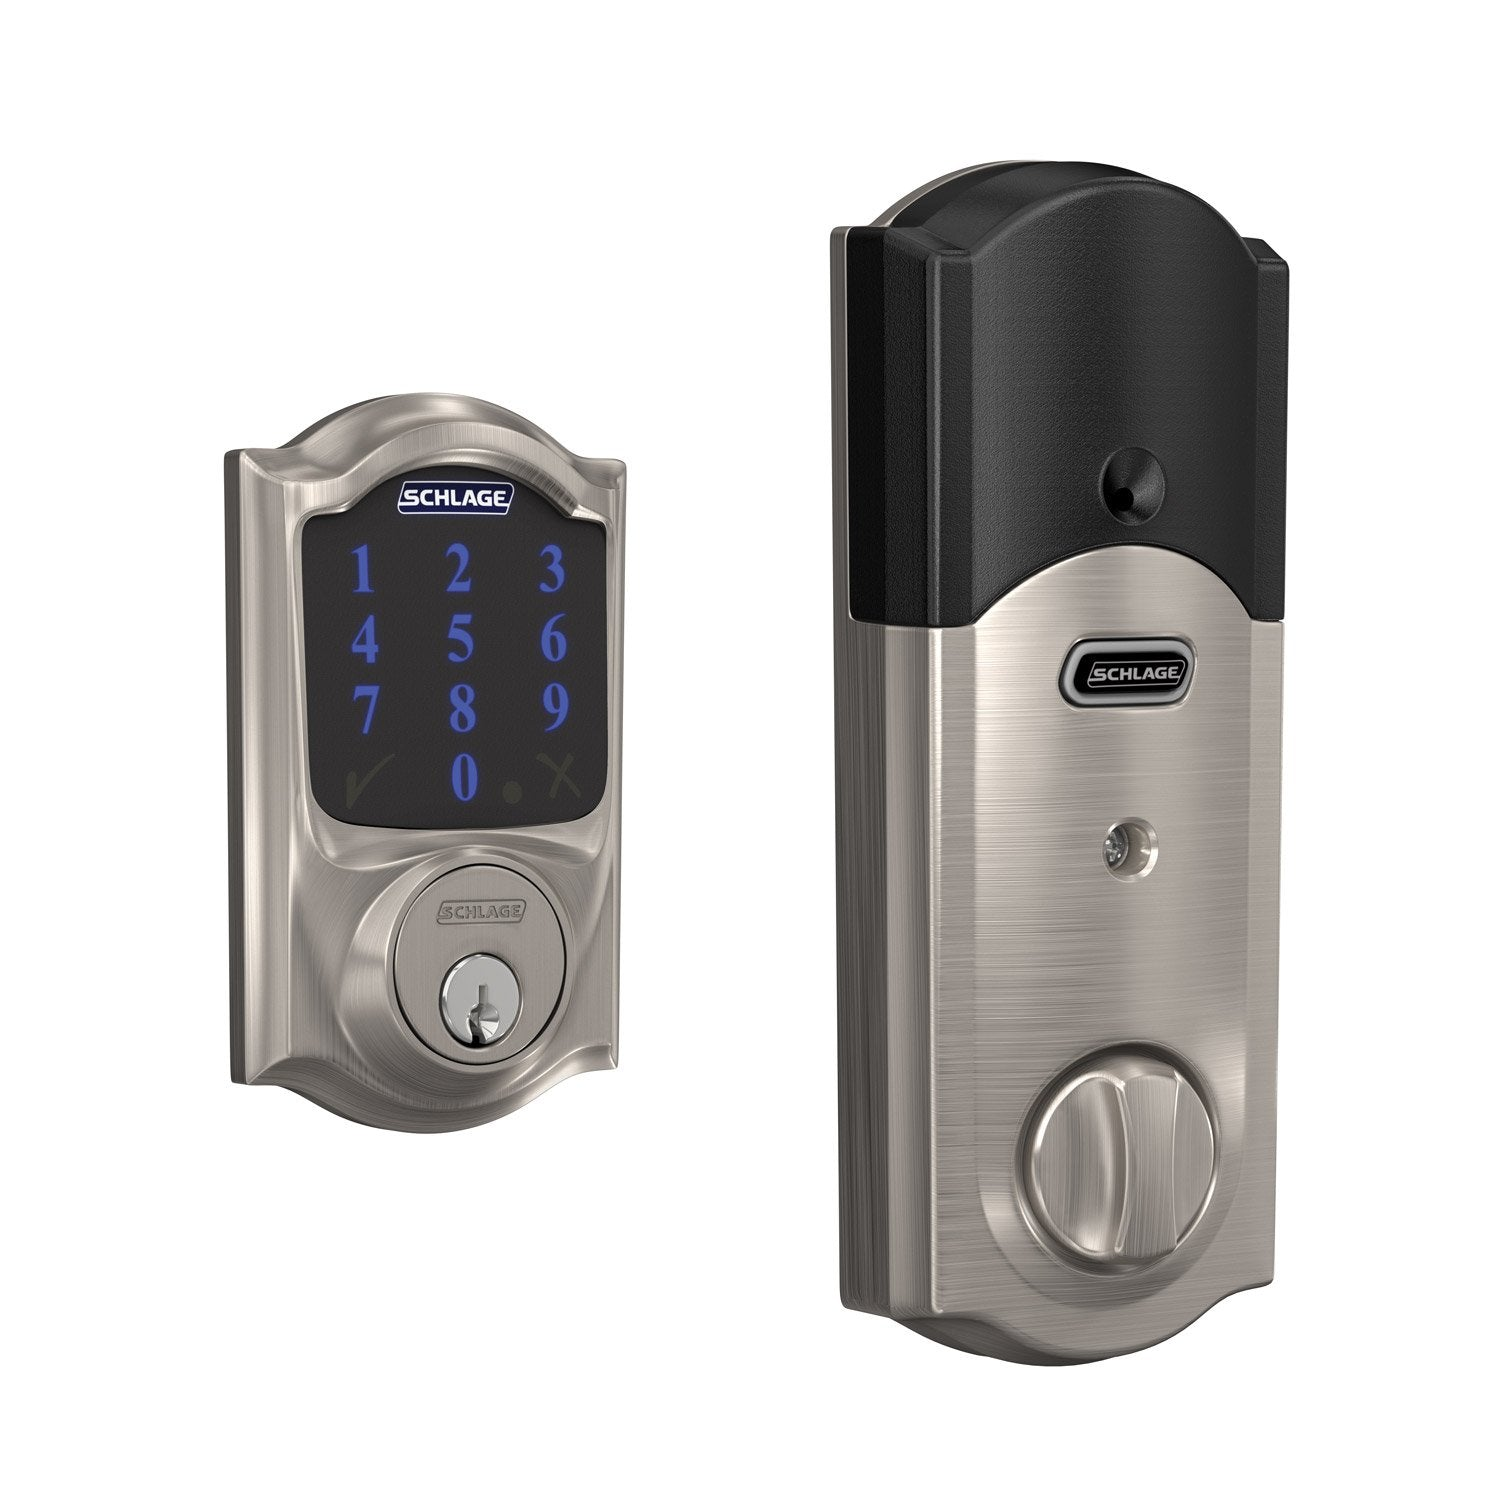 Add the Schlage Connect Smart Z-Wave Plus Deadbolt to Your